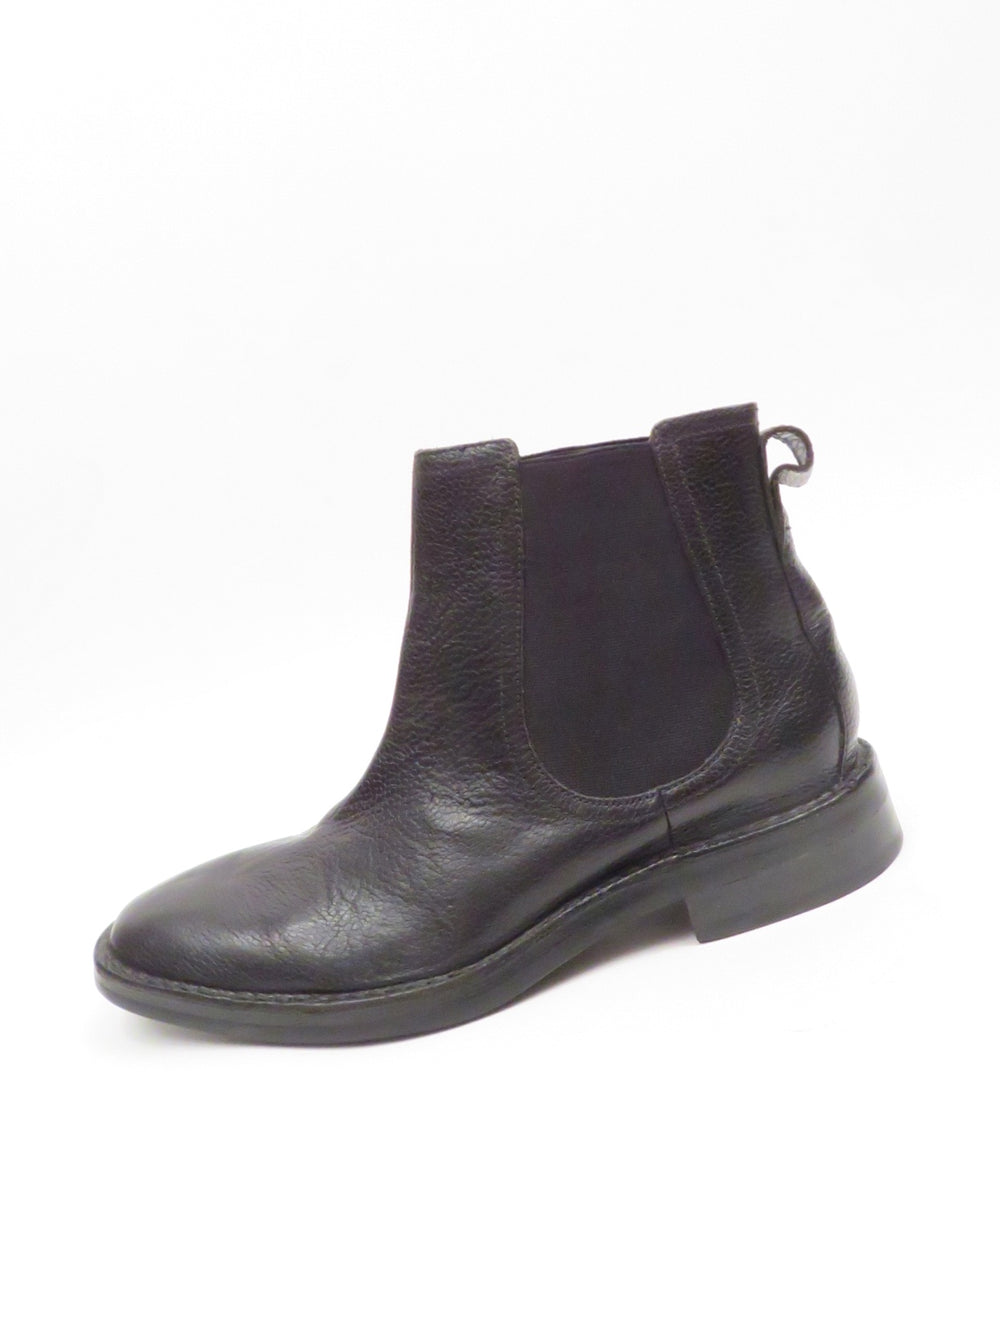 "cole haan black pebbled leather chelsea boots. features 'nike air' soles with ~ 1.25"" stacked heel."